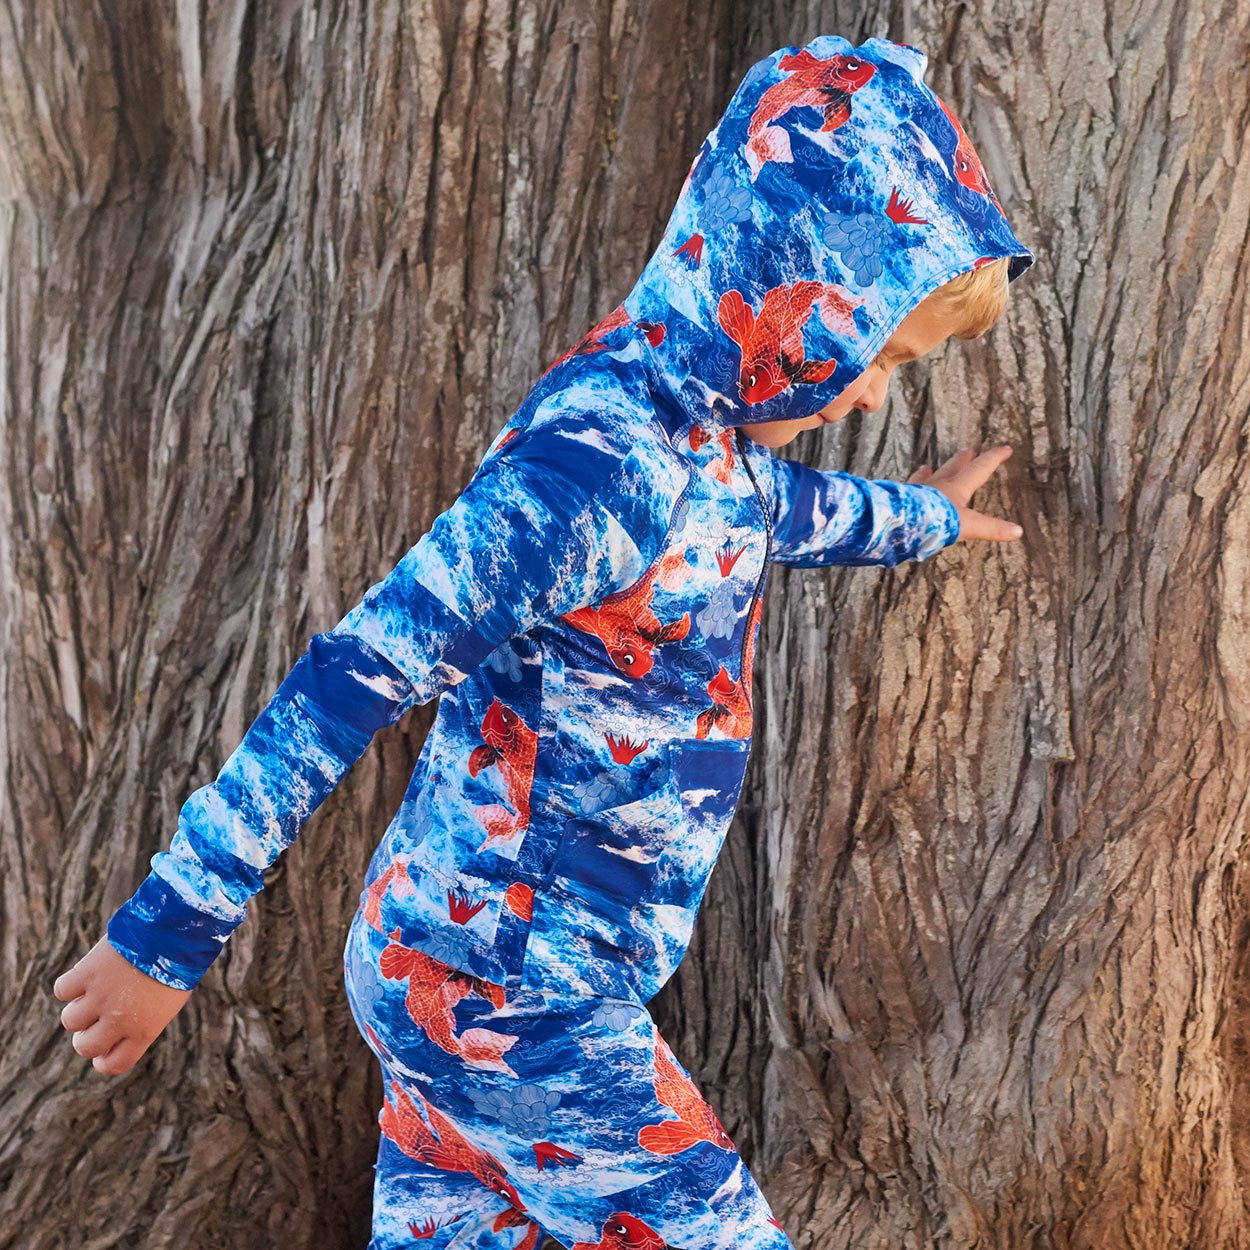 Koi Fish Zip Up Hoodie Upf50 Kids Boys Size 2 12 Blue Orange Blonde Boy Wearing A Hoodie Walking Past A Tree At The Beach Sunpoplife